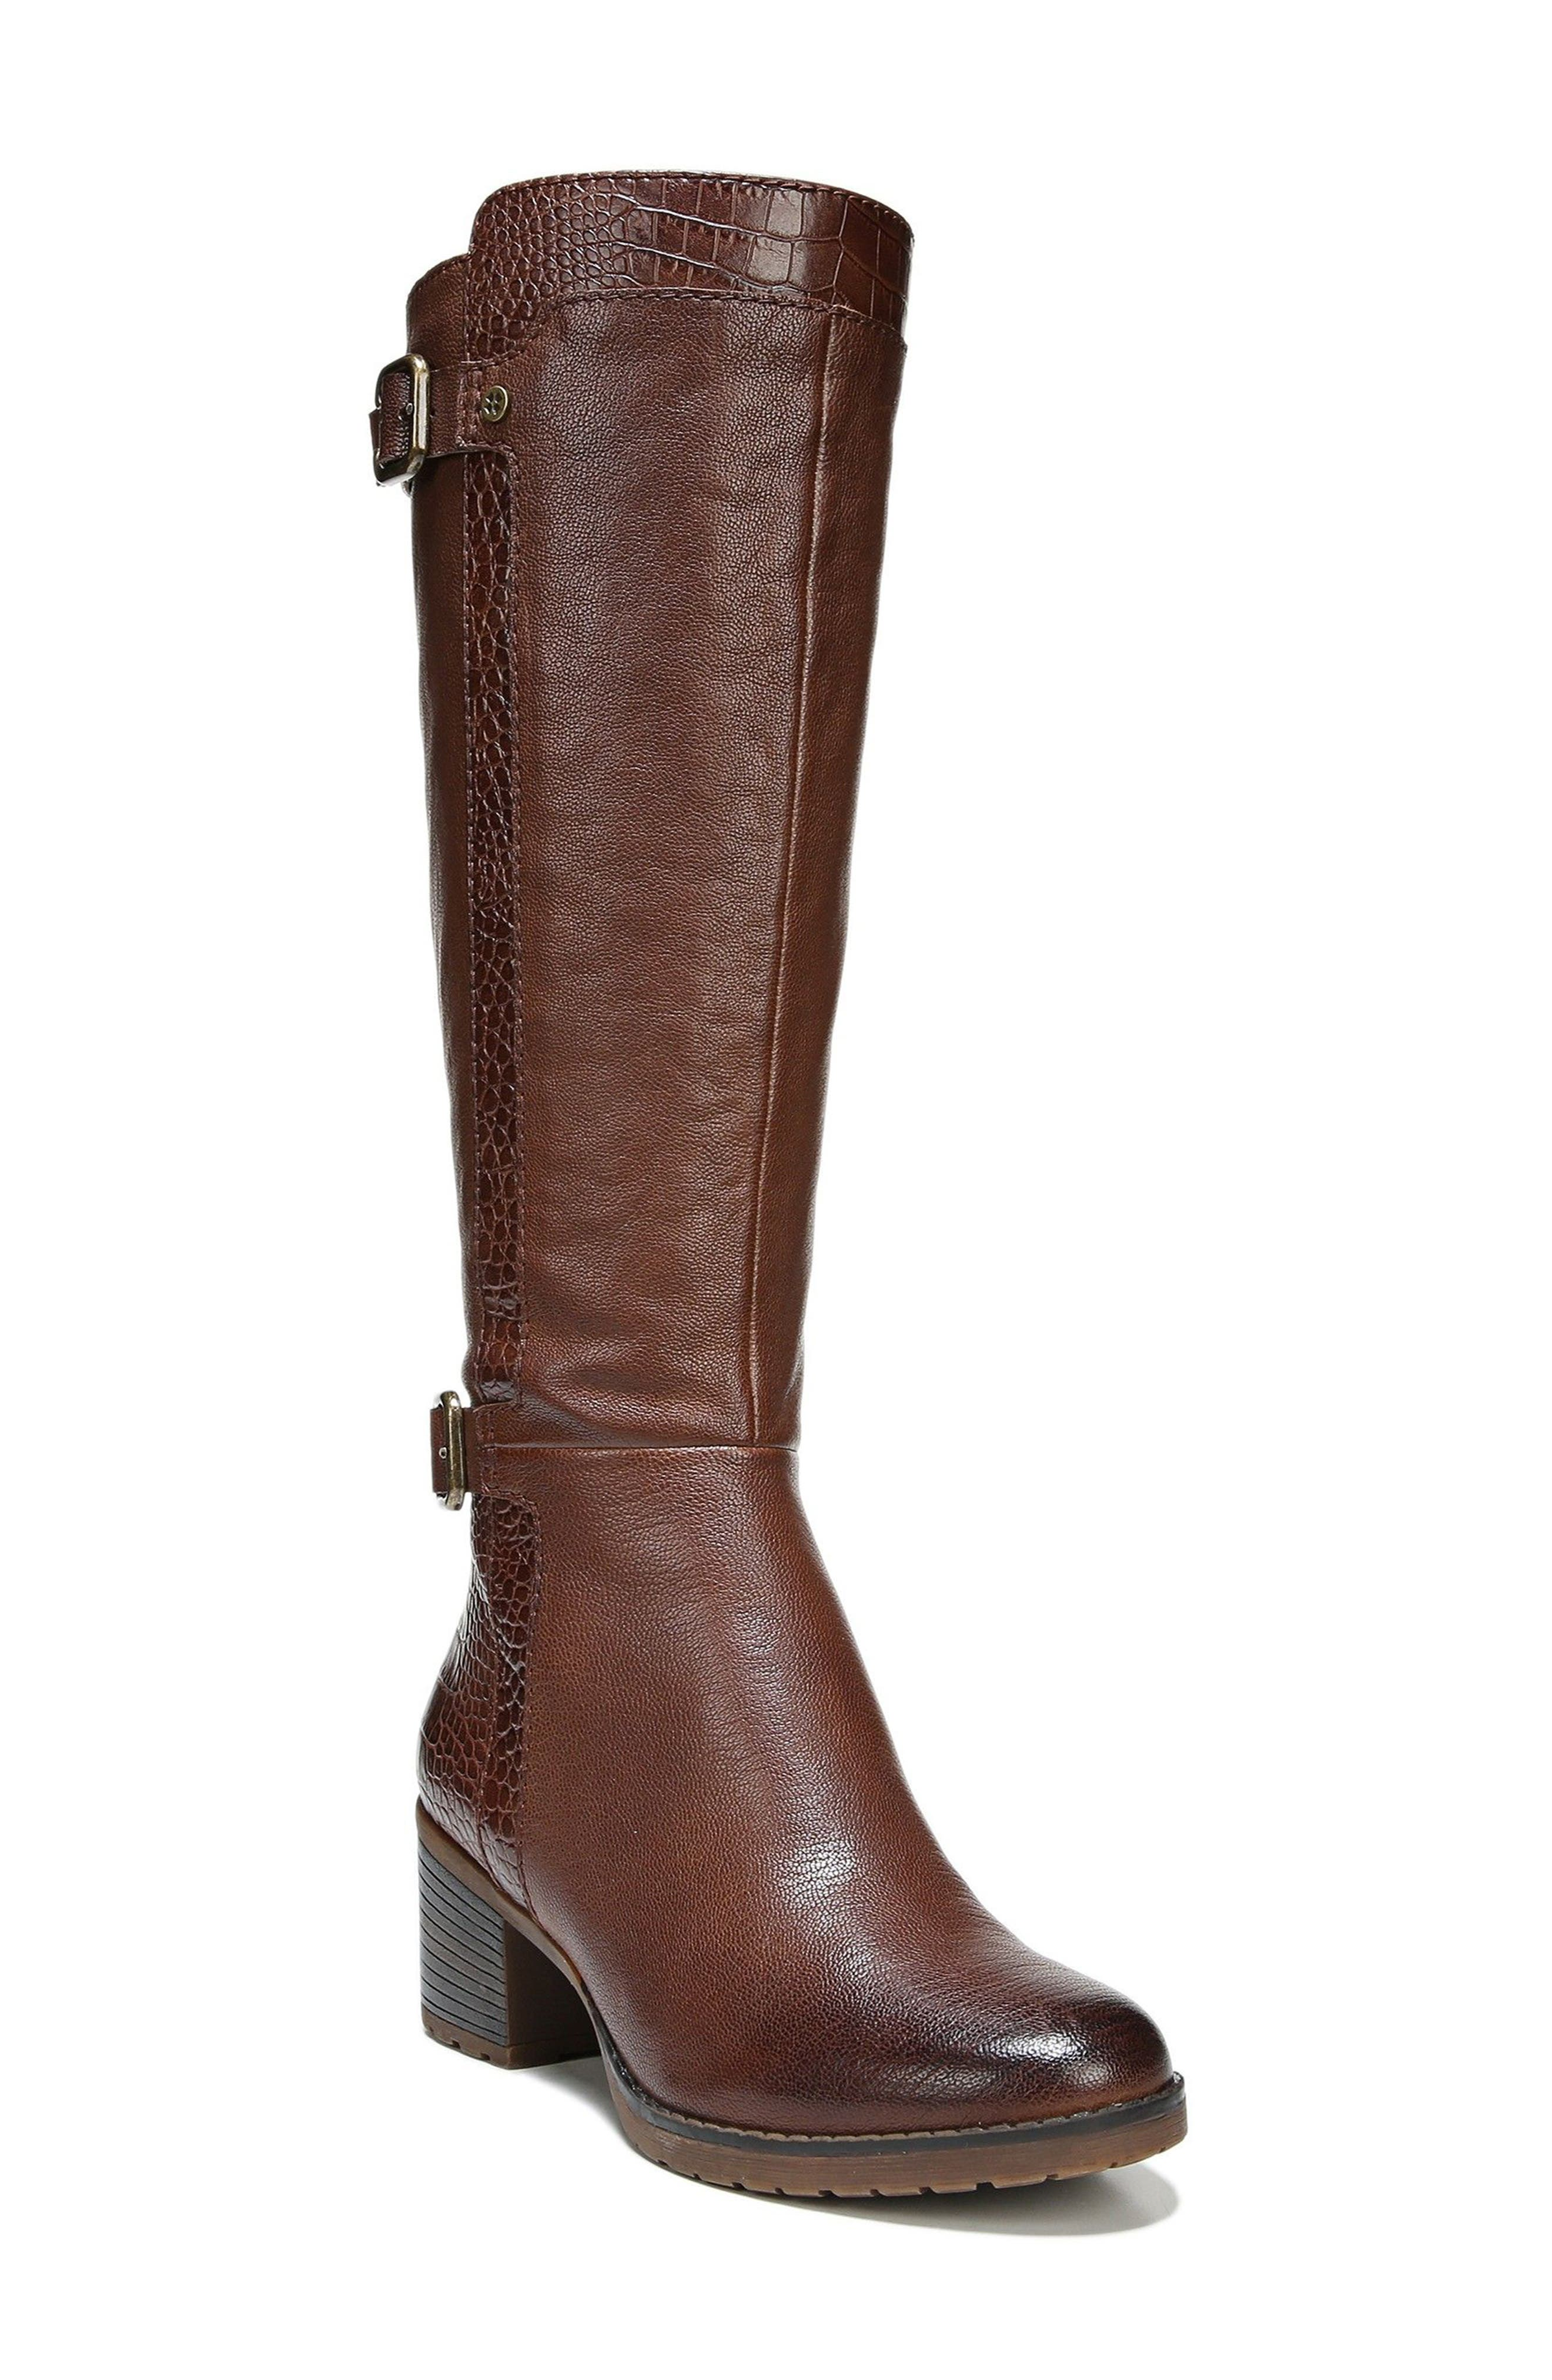 Alternate Image 1 Selected - Naturalizer Rozene Knee High Boot (Women)